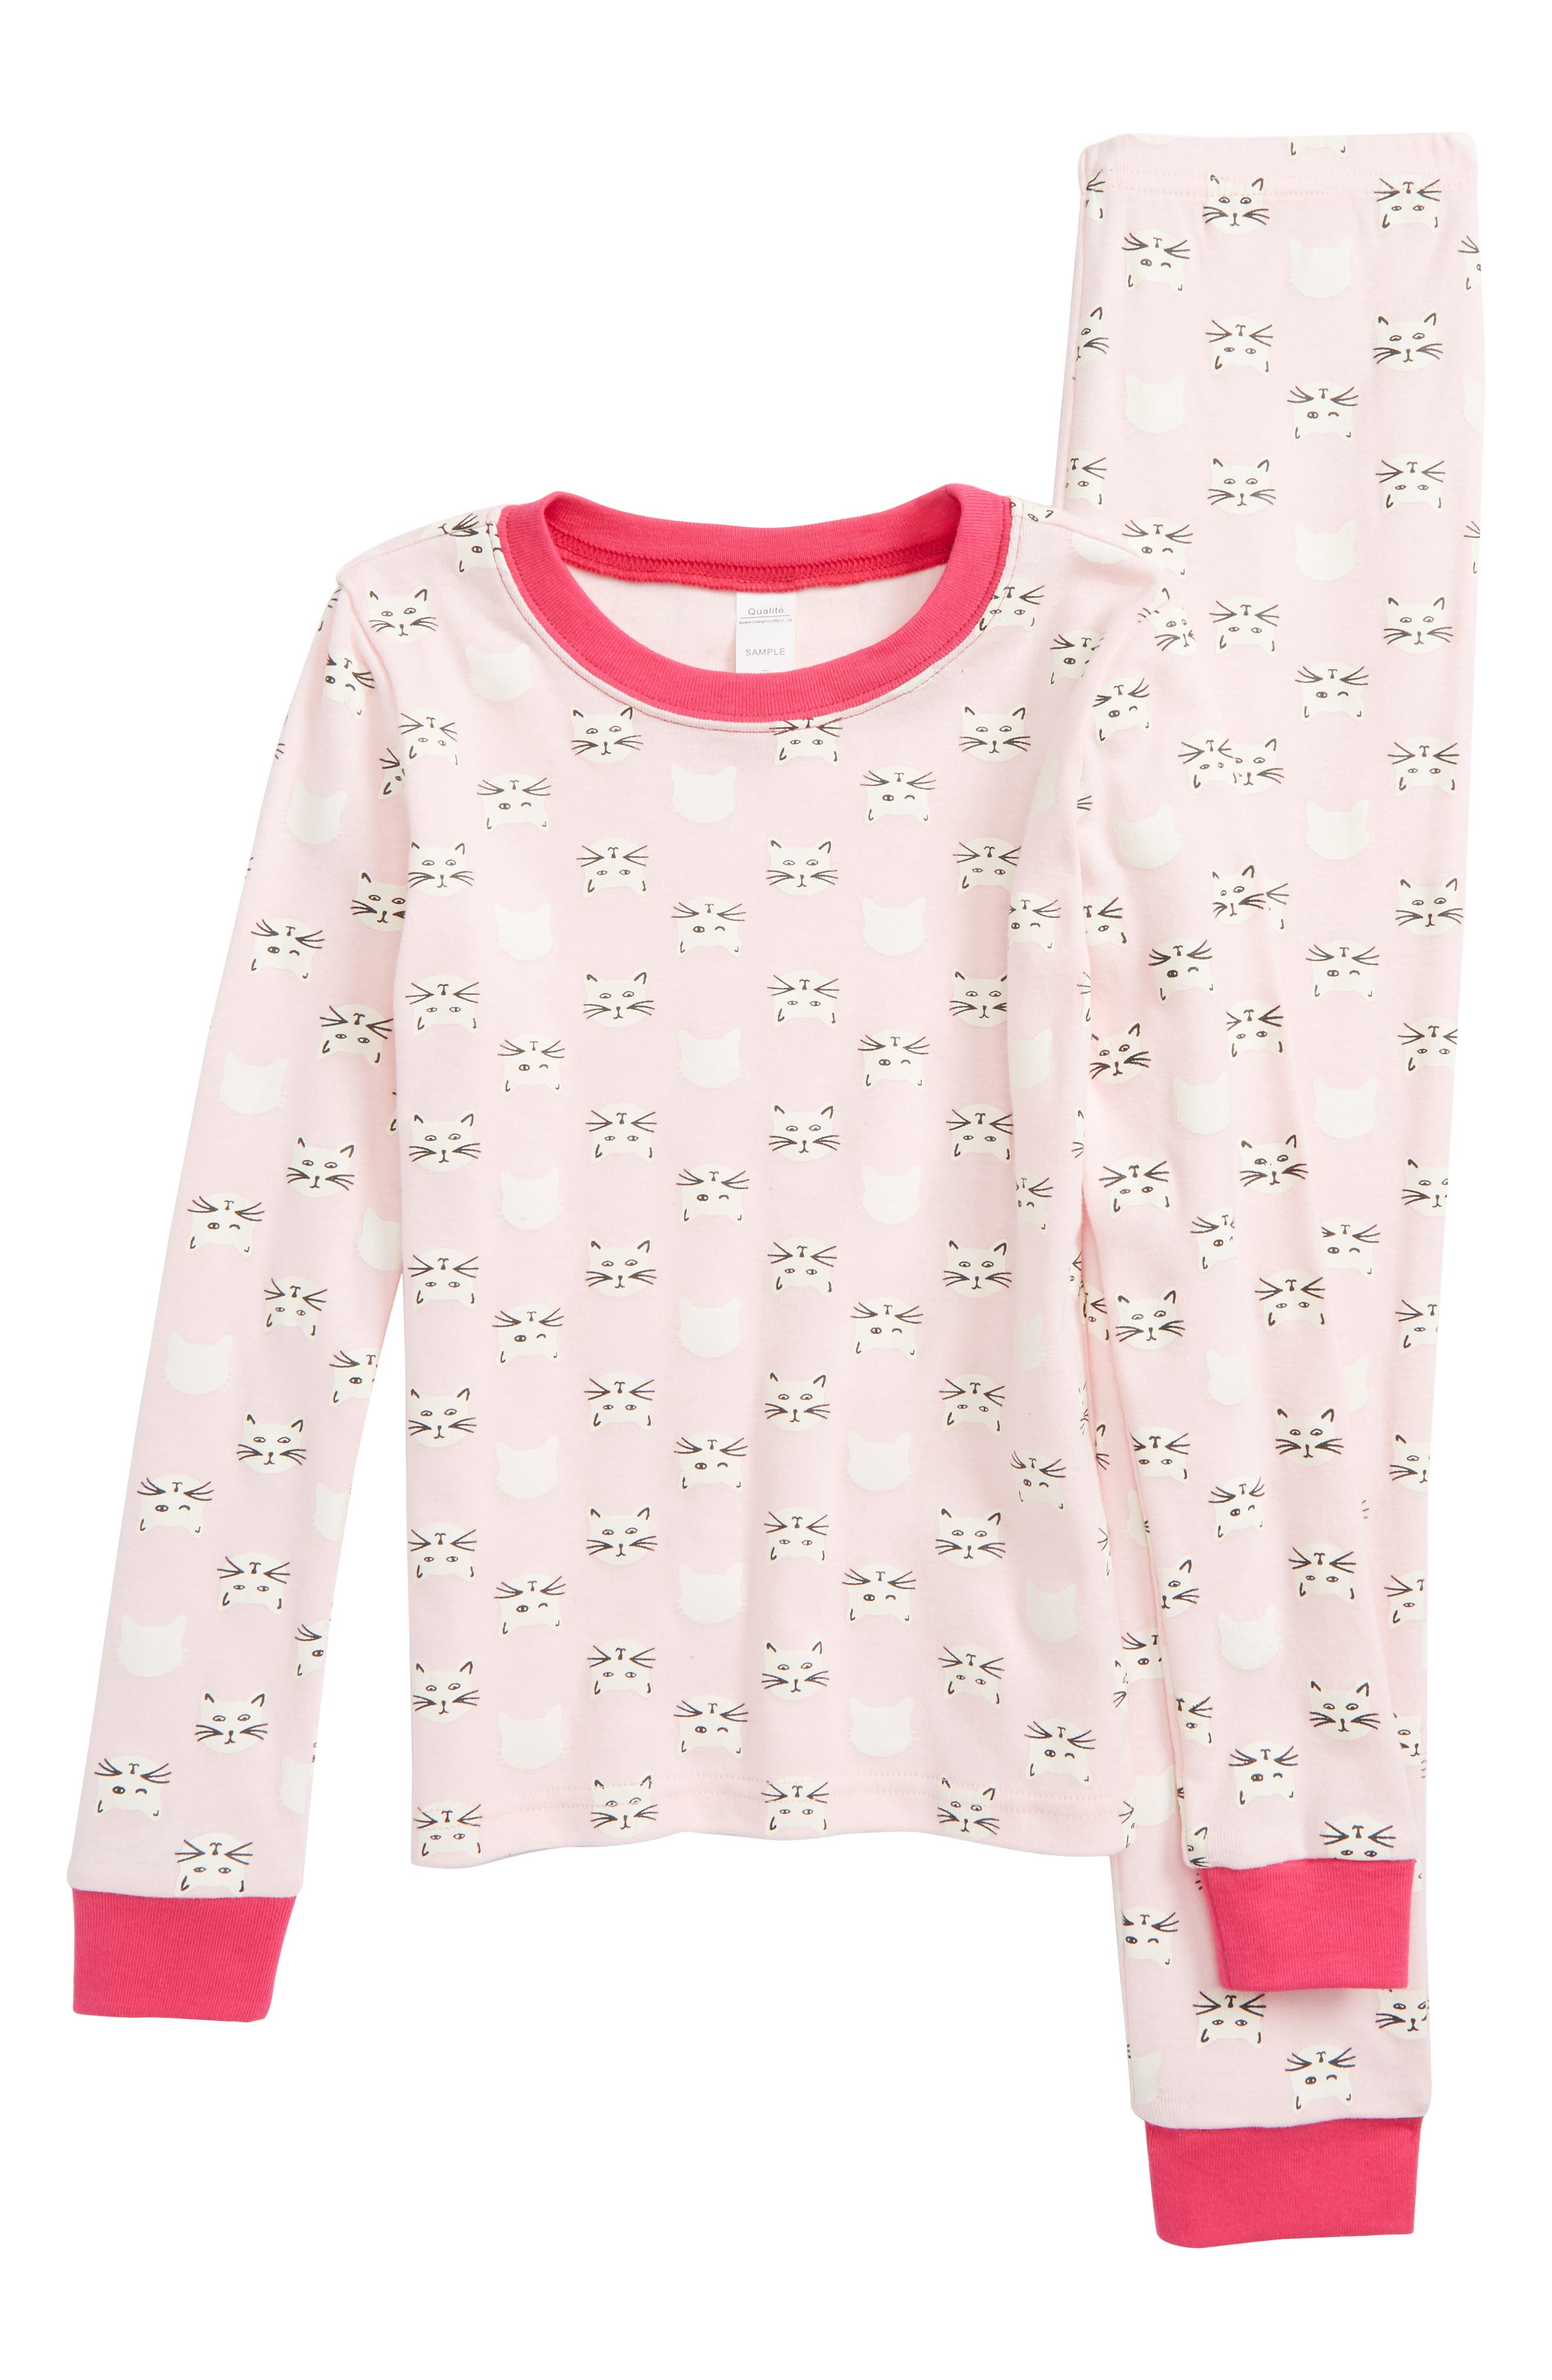 Glow In The Dark Two-Piece Fitted Pajamas,                             Main thumbnail 1, color,                             Pink Baby Kitty Cat